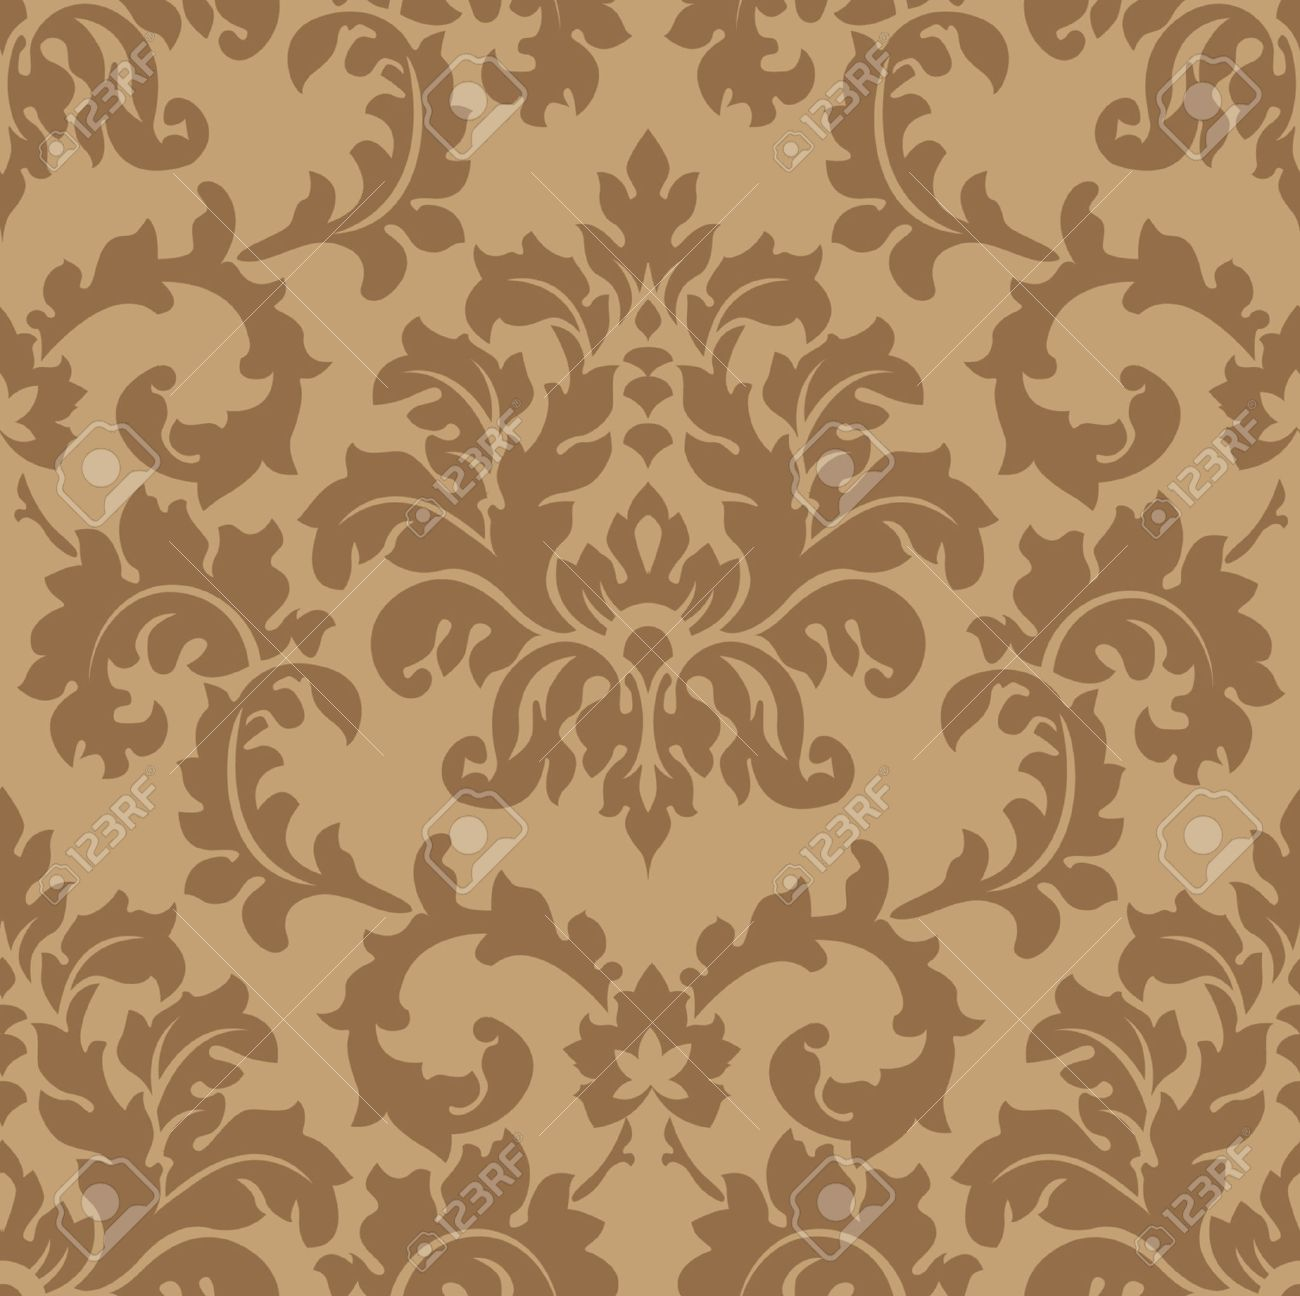 Seamless Damask wallpaper Stock Vector   6119236. Seamless Damask Wallpaper Royalty Free Cliparts  Vectors  And